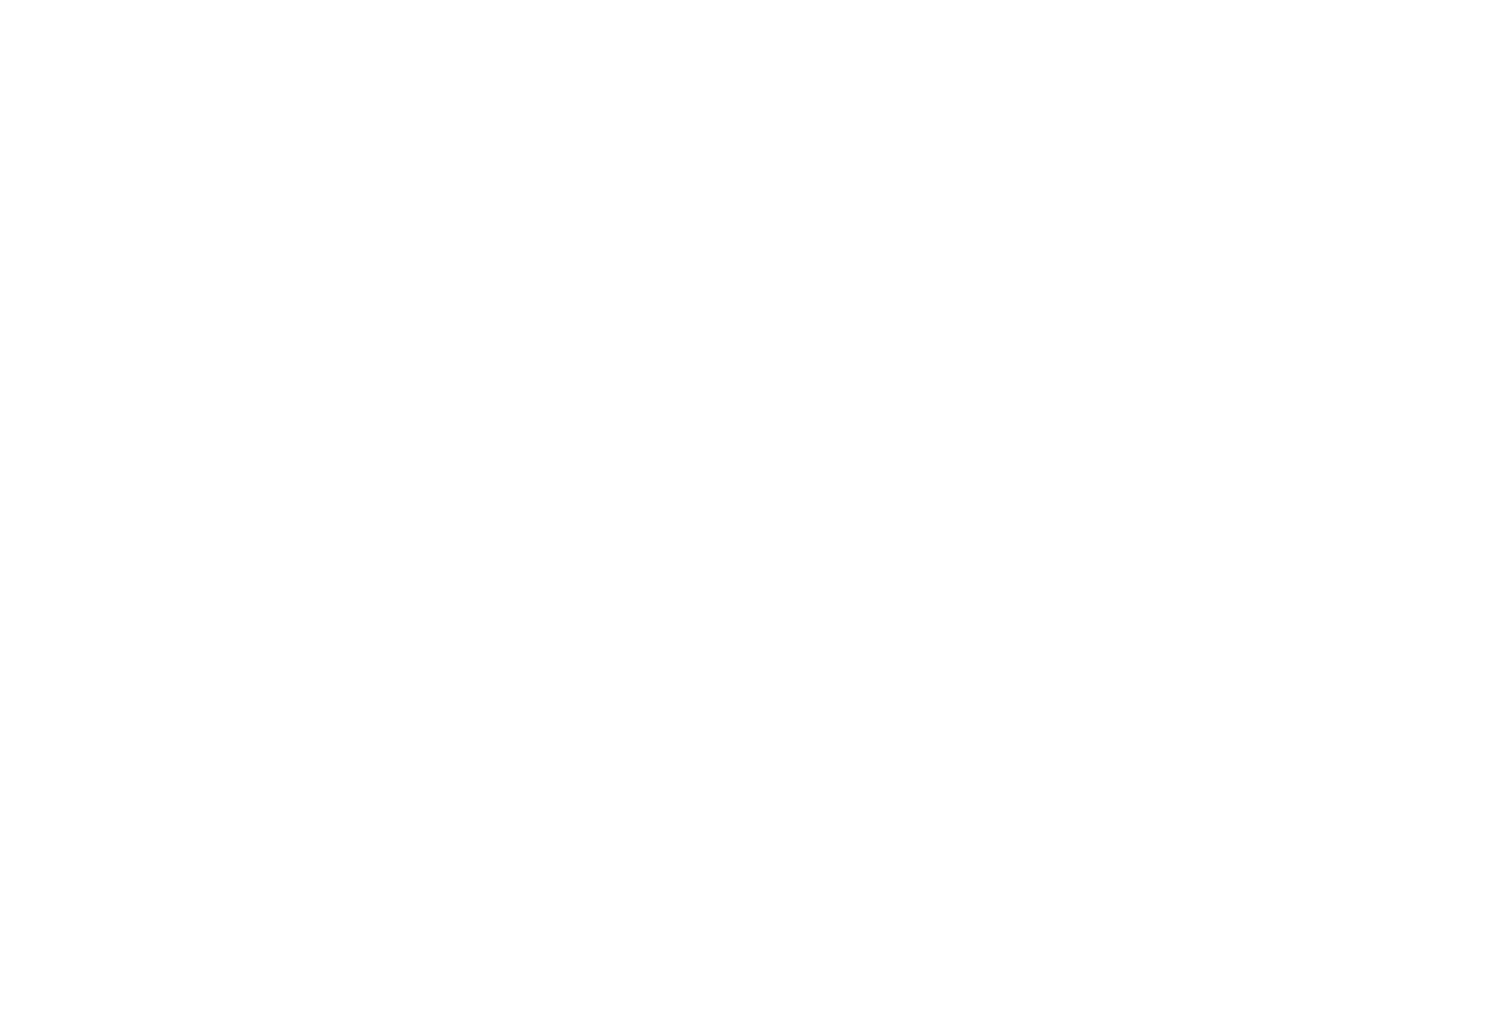 The SpOiled Housewife